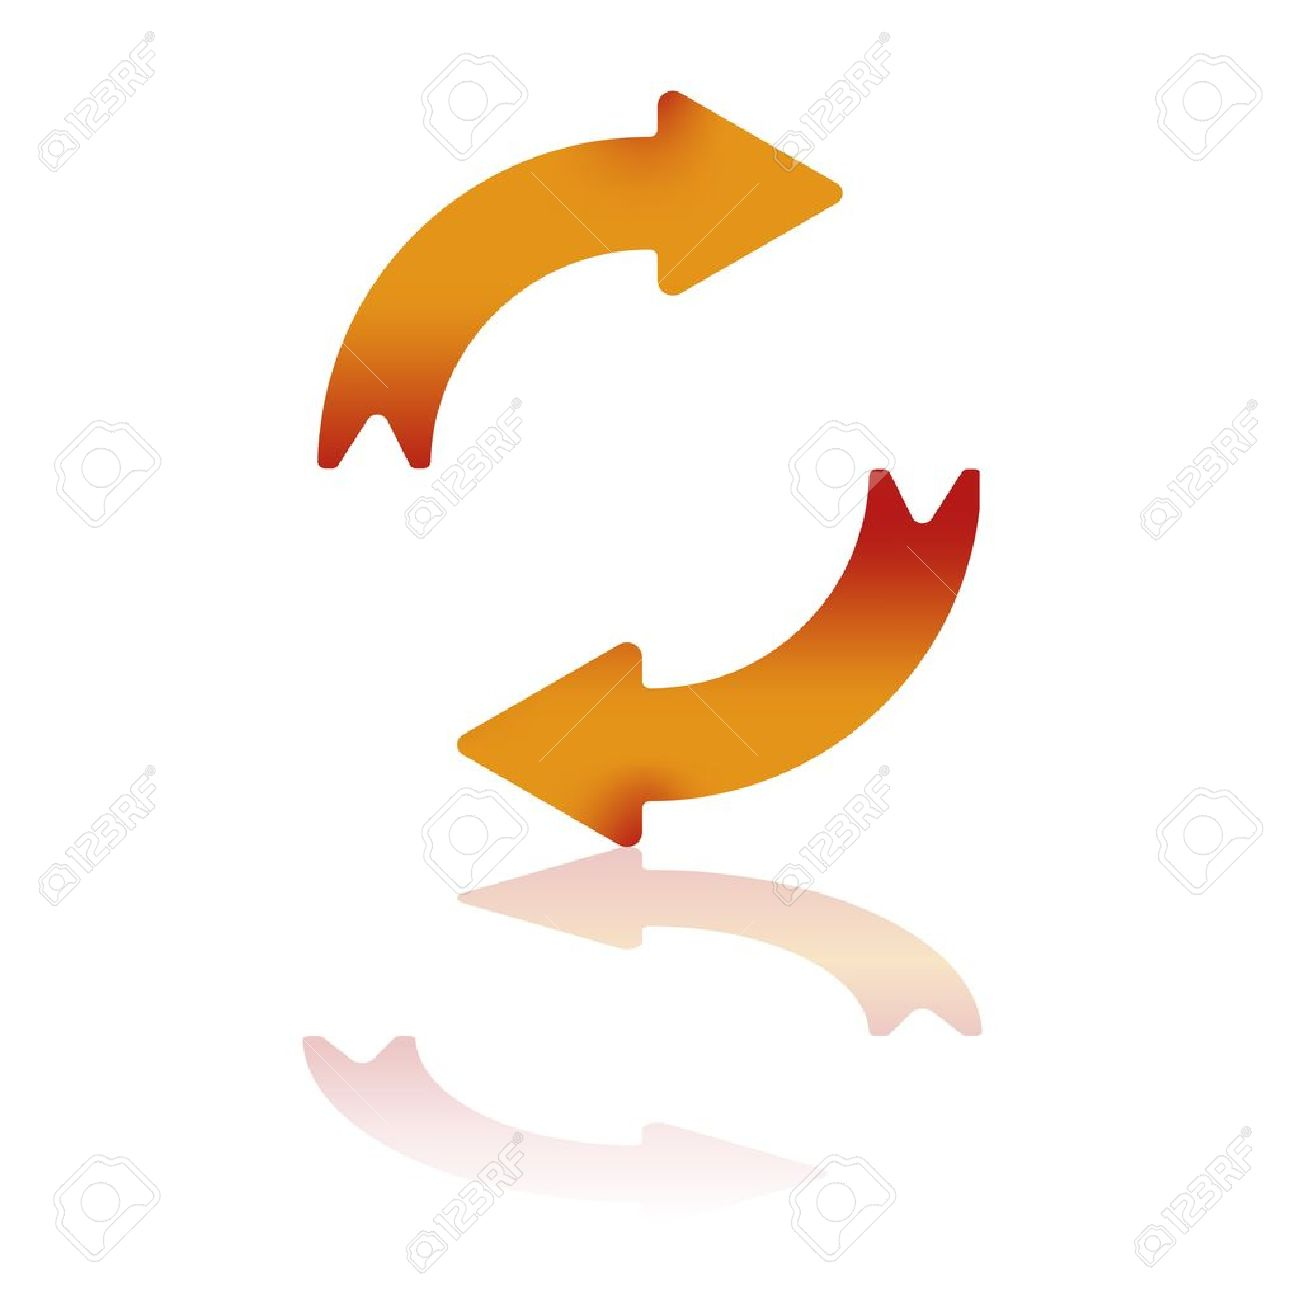 Two Gradient Arrows Depicting Clockwise Motion With Reflection Stock Vector - 10598790